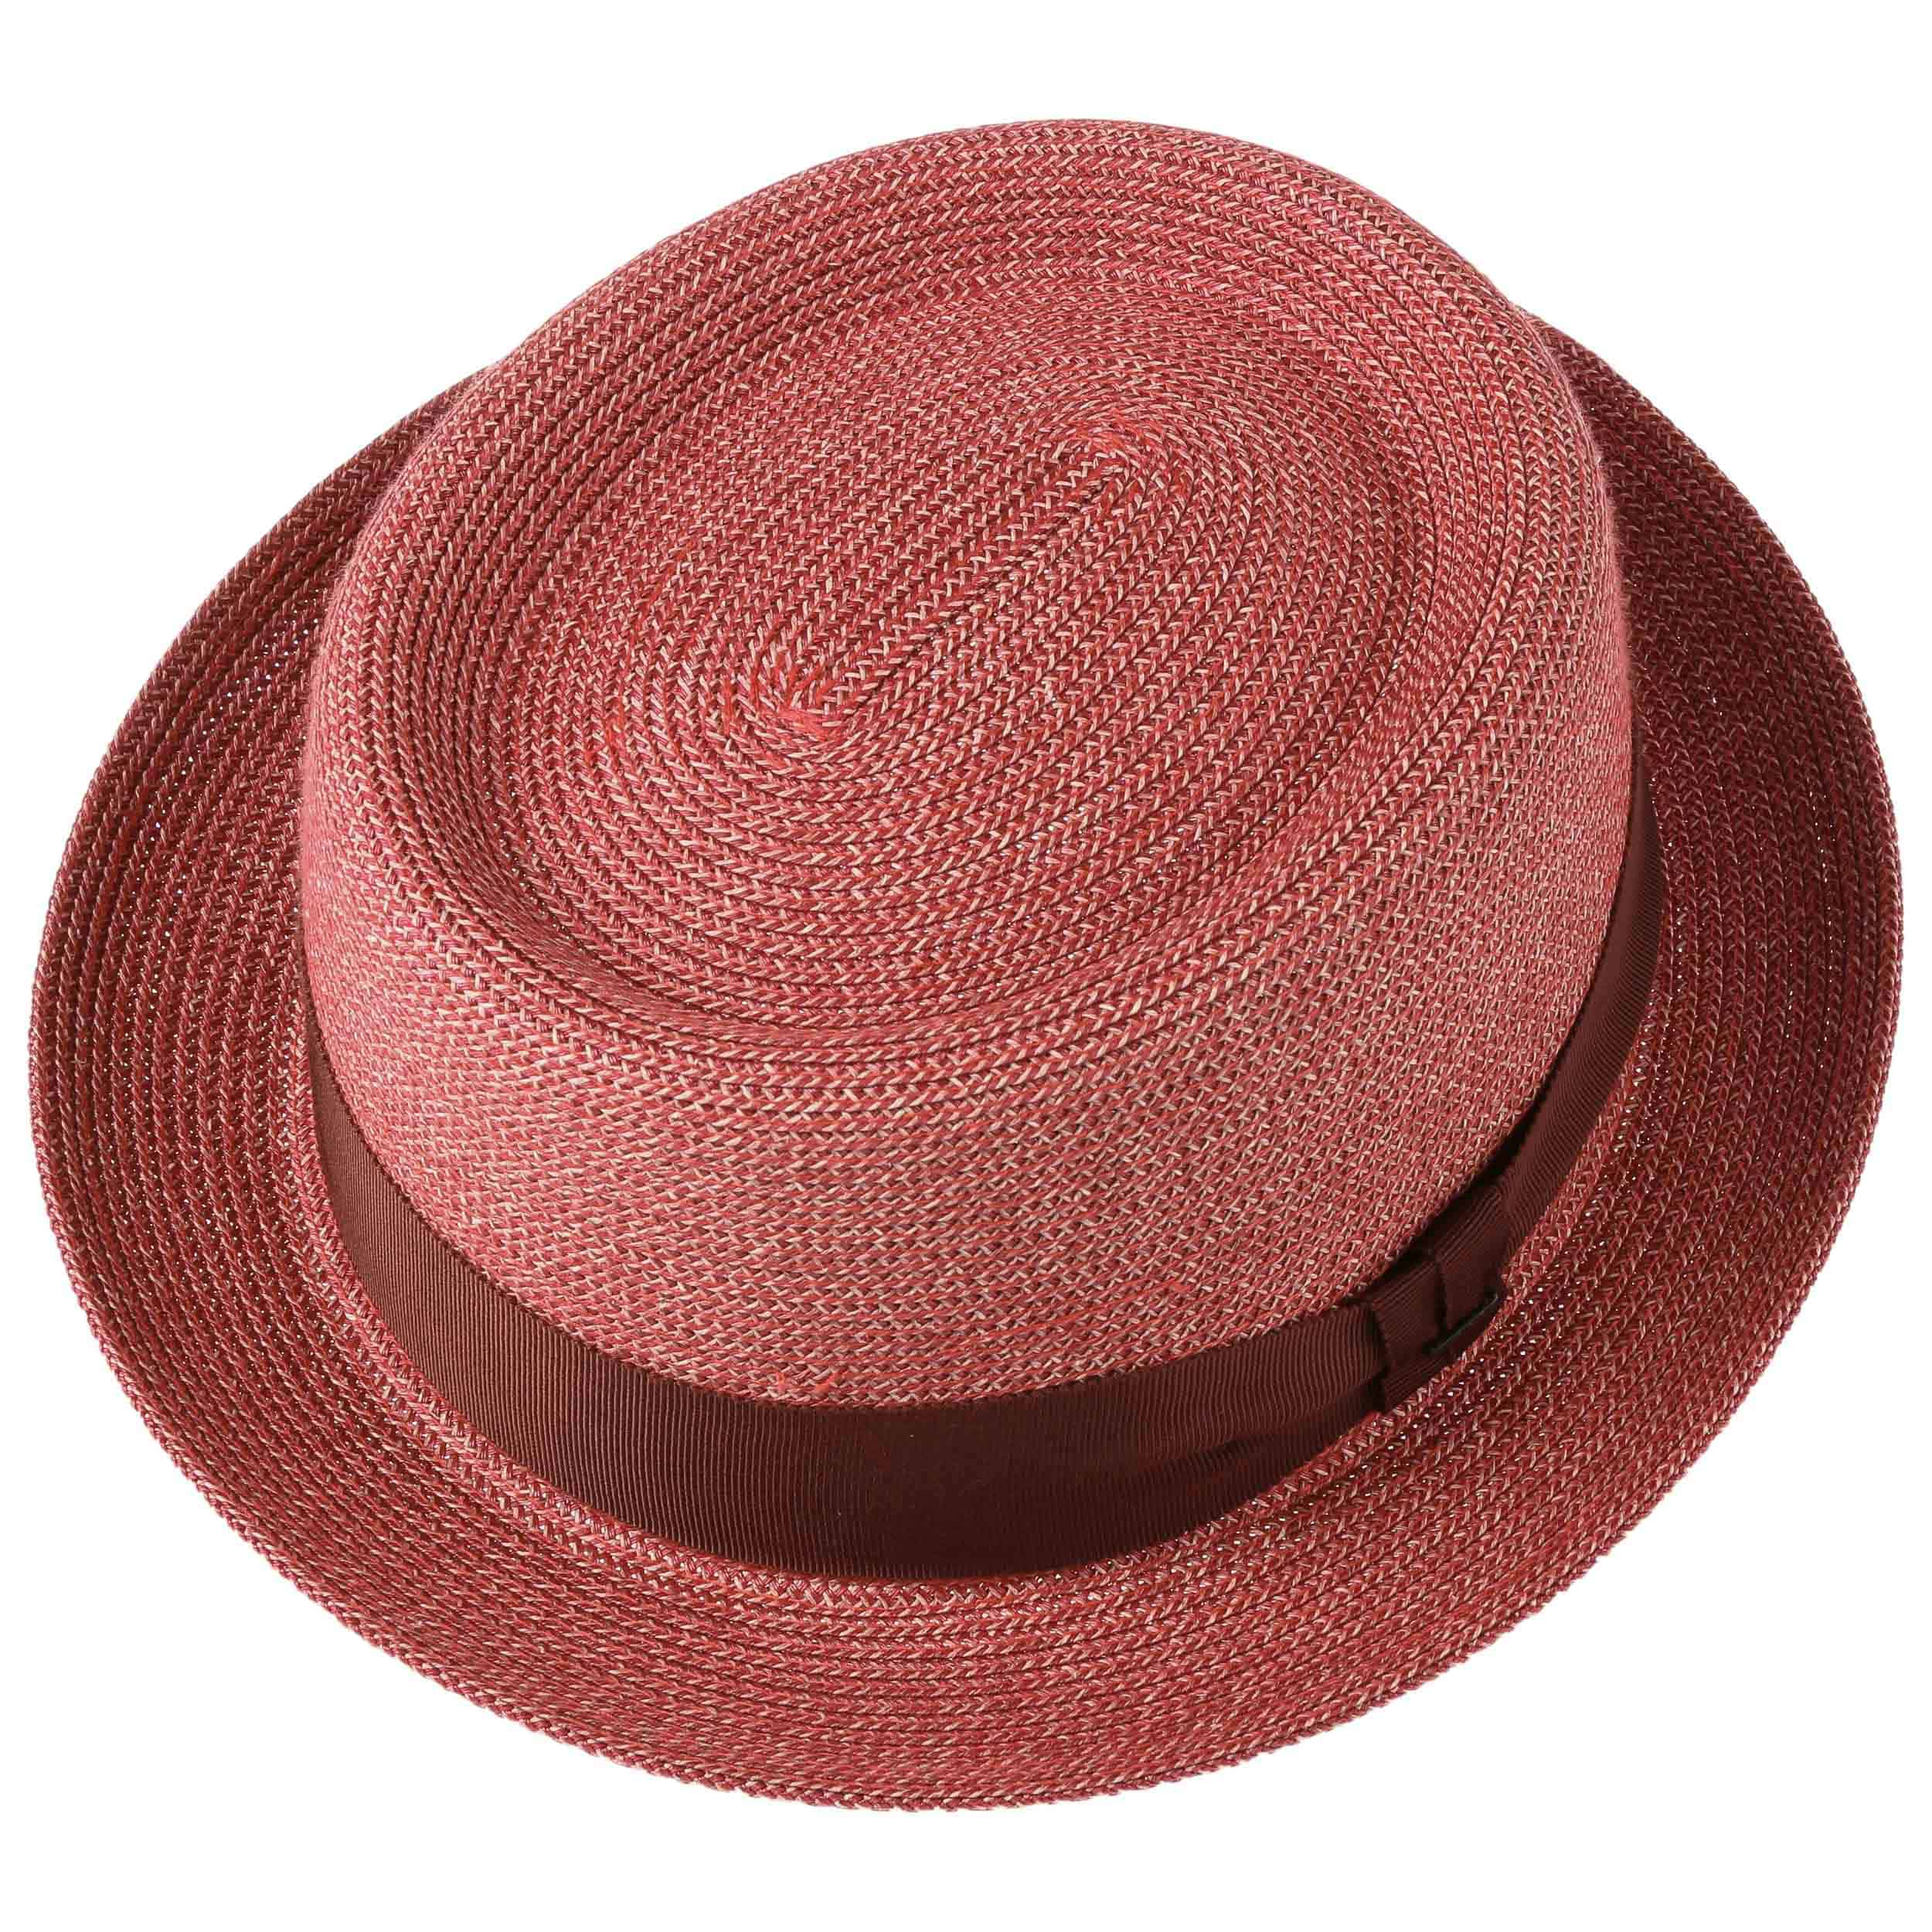 73edca9153b6ce ... Waits Pork Pie Hat by Bailey of Hollywood - red-mottled 1 ...